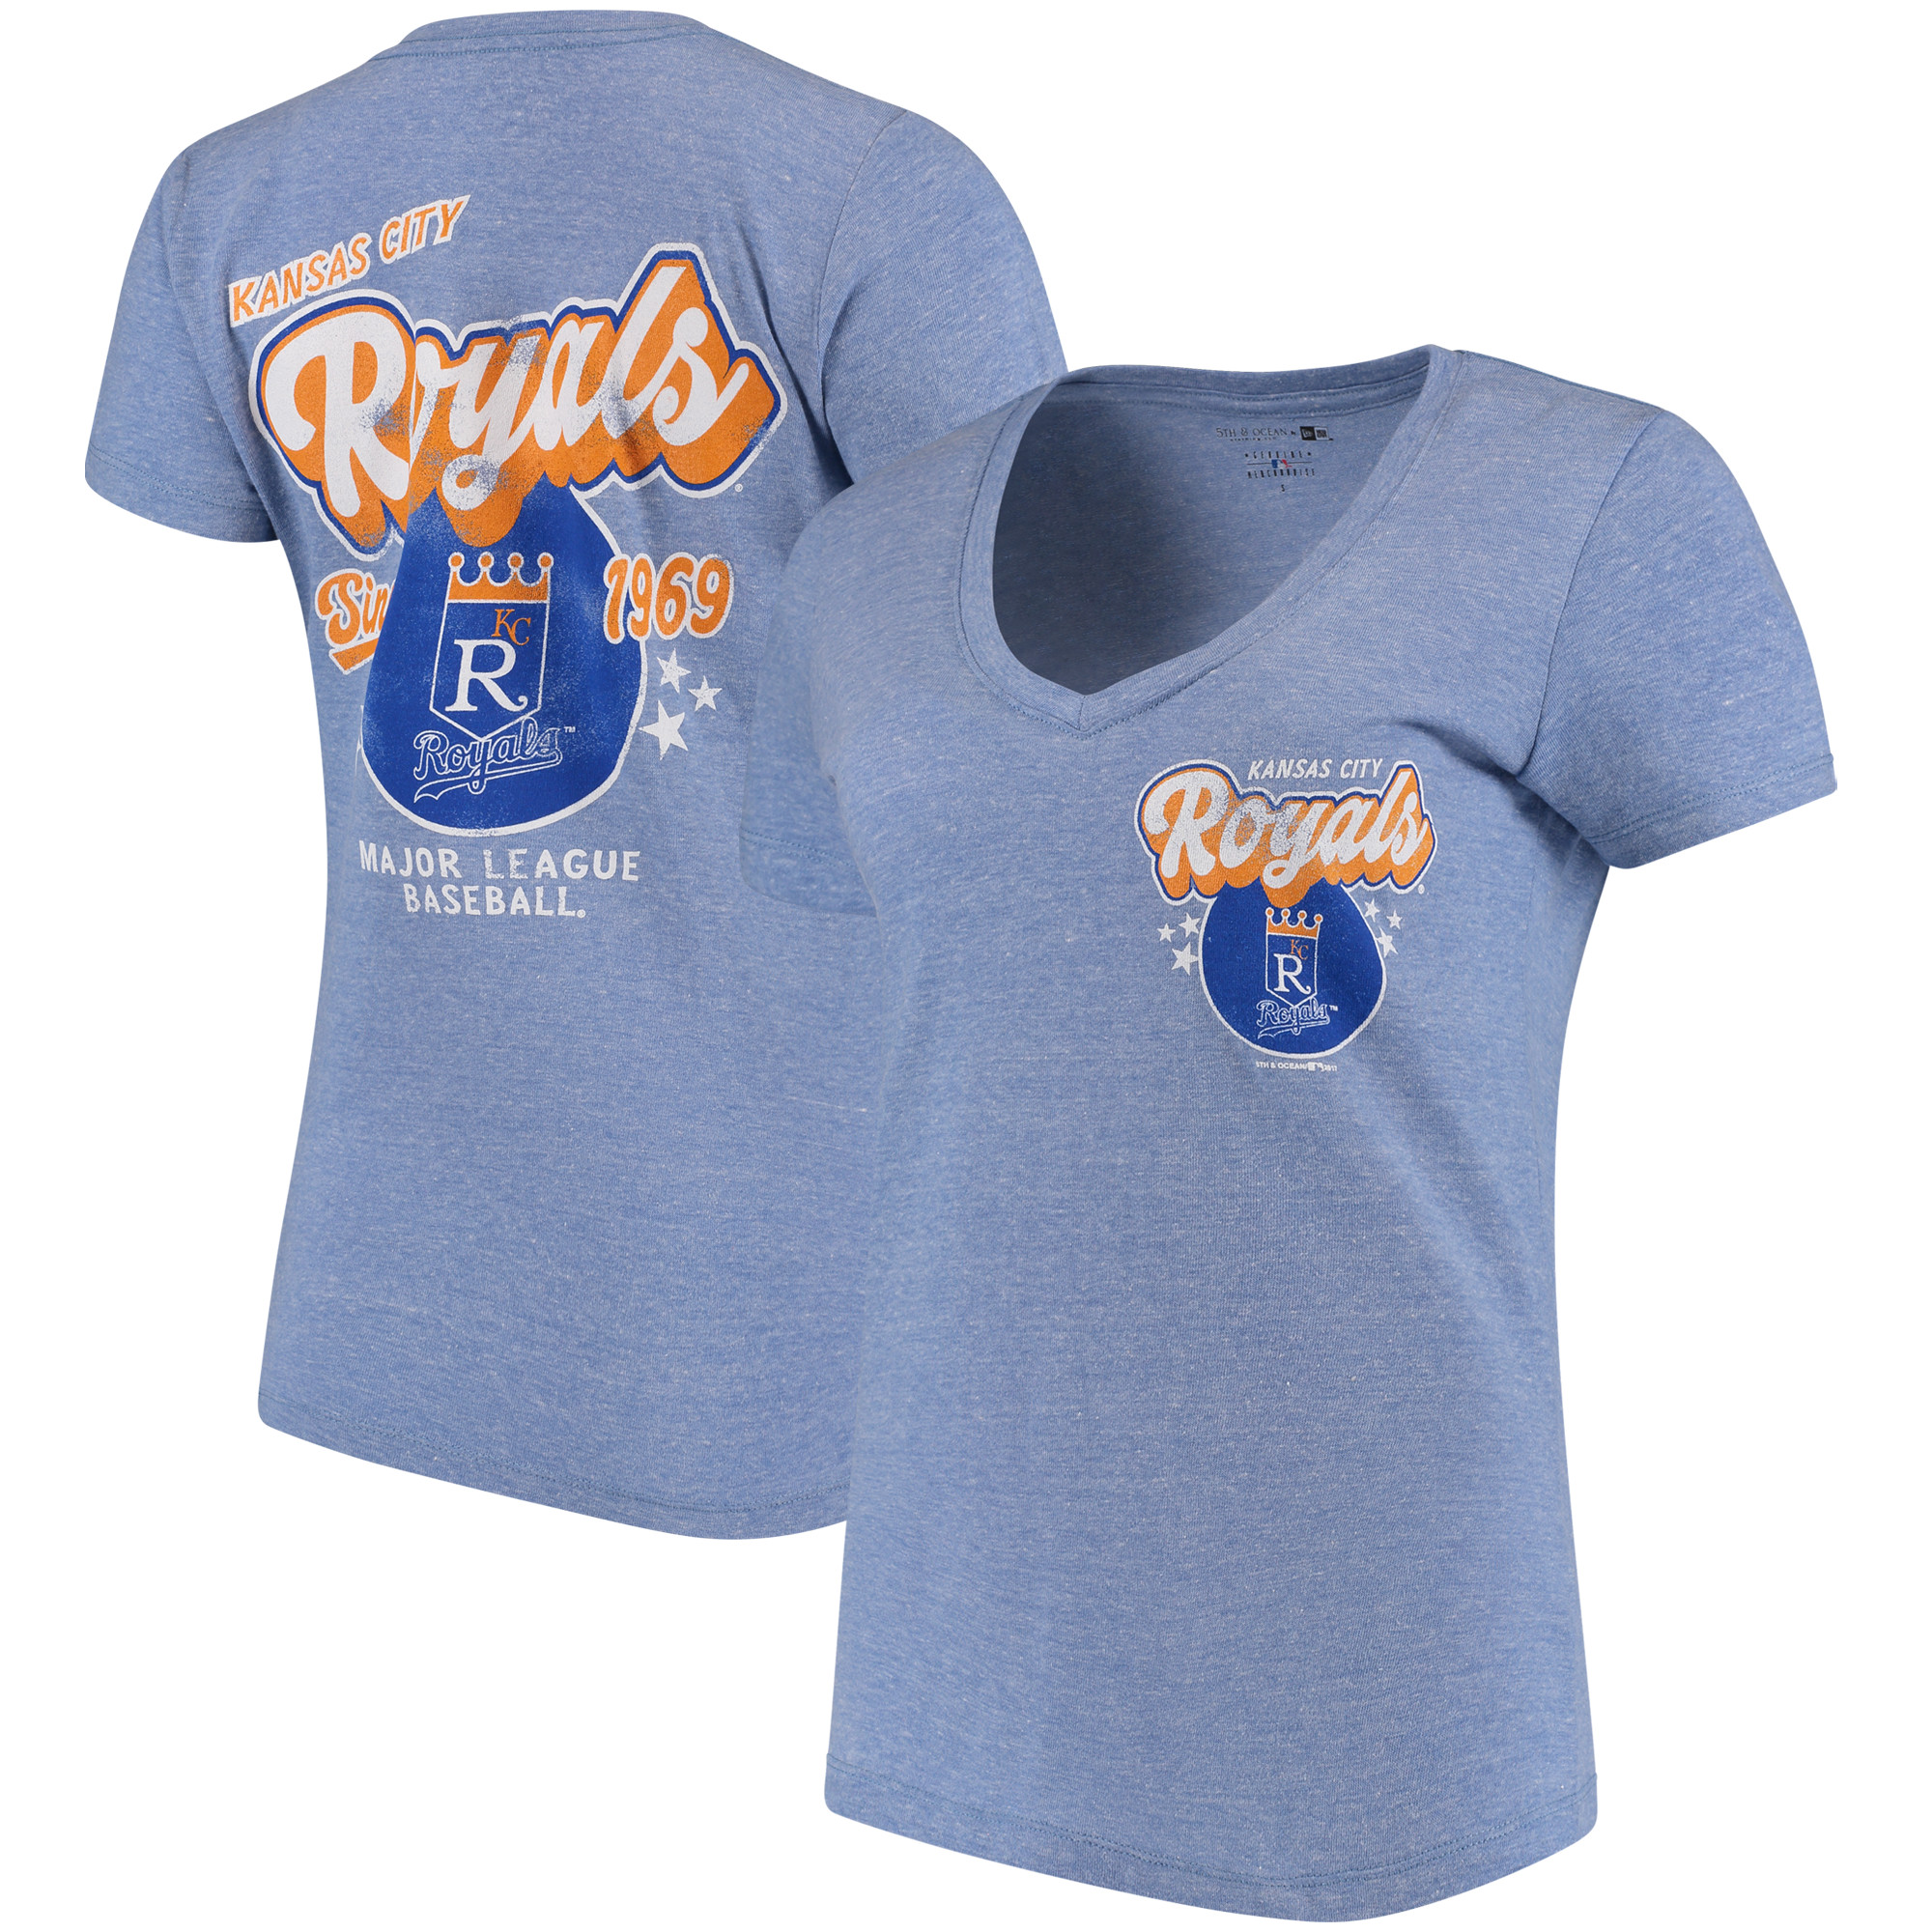 Kansas City Royals 5th & Ocean by New Era Women's Cooperstown Collection Tri-Blend V-Neck T-Shirt - Heathered Light Blue